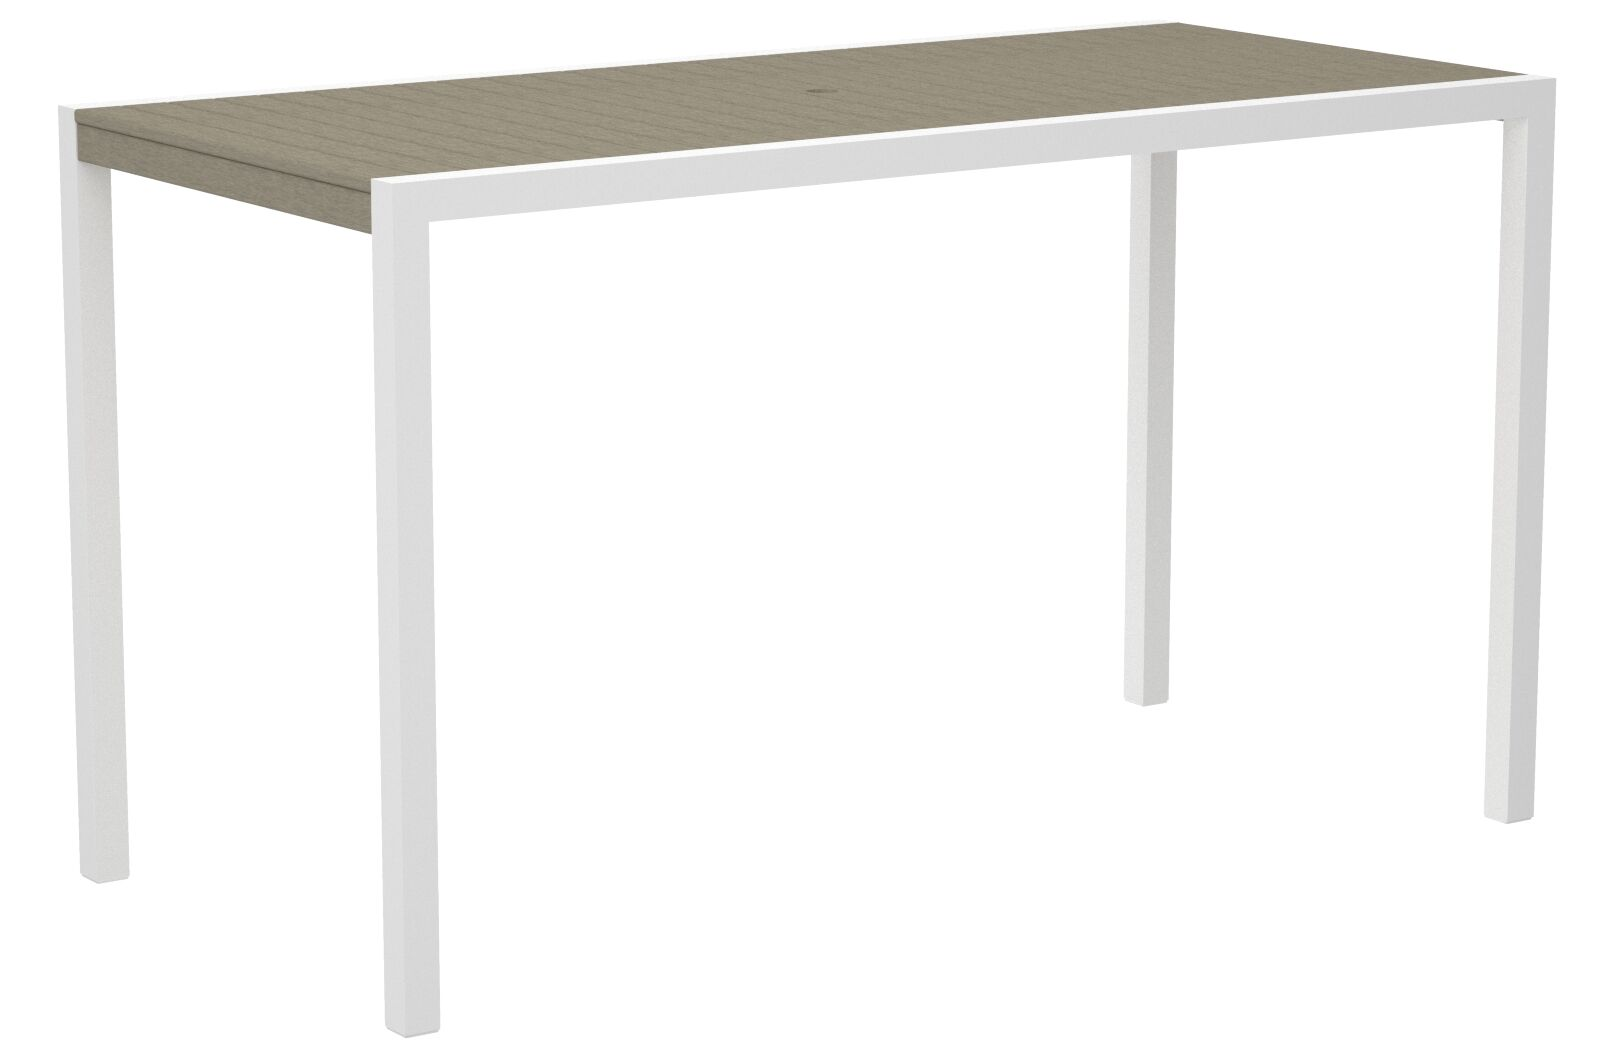 Mod Bar Table Base Finish: Textured White, Top Finish: Sand